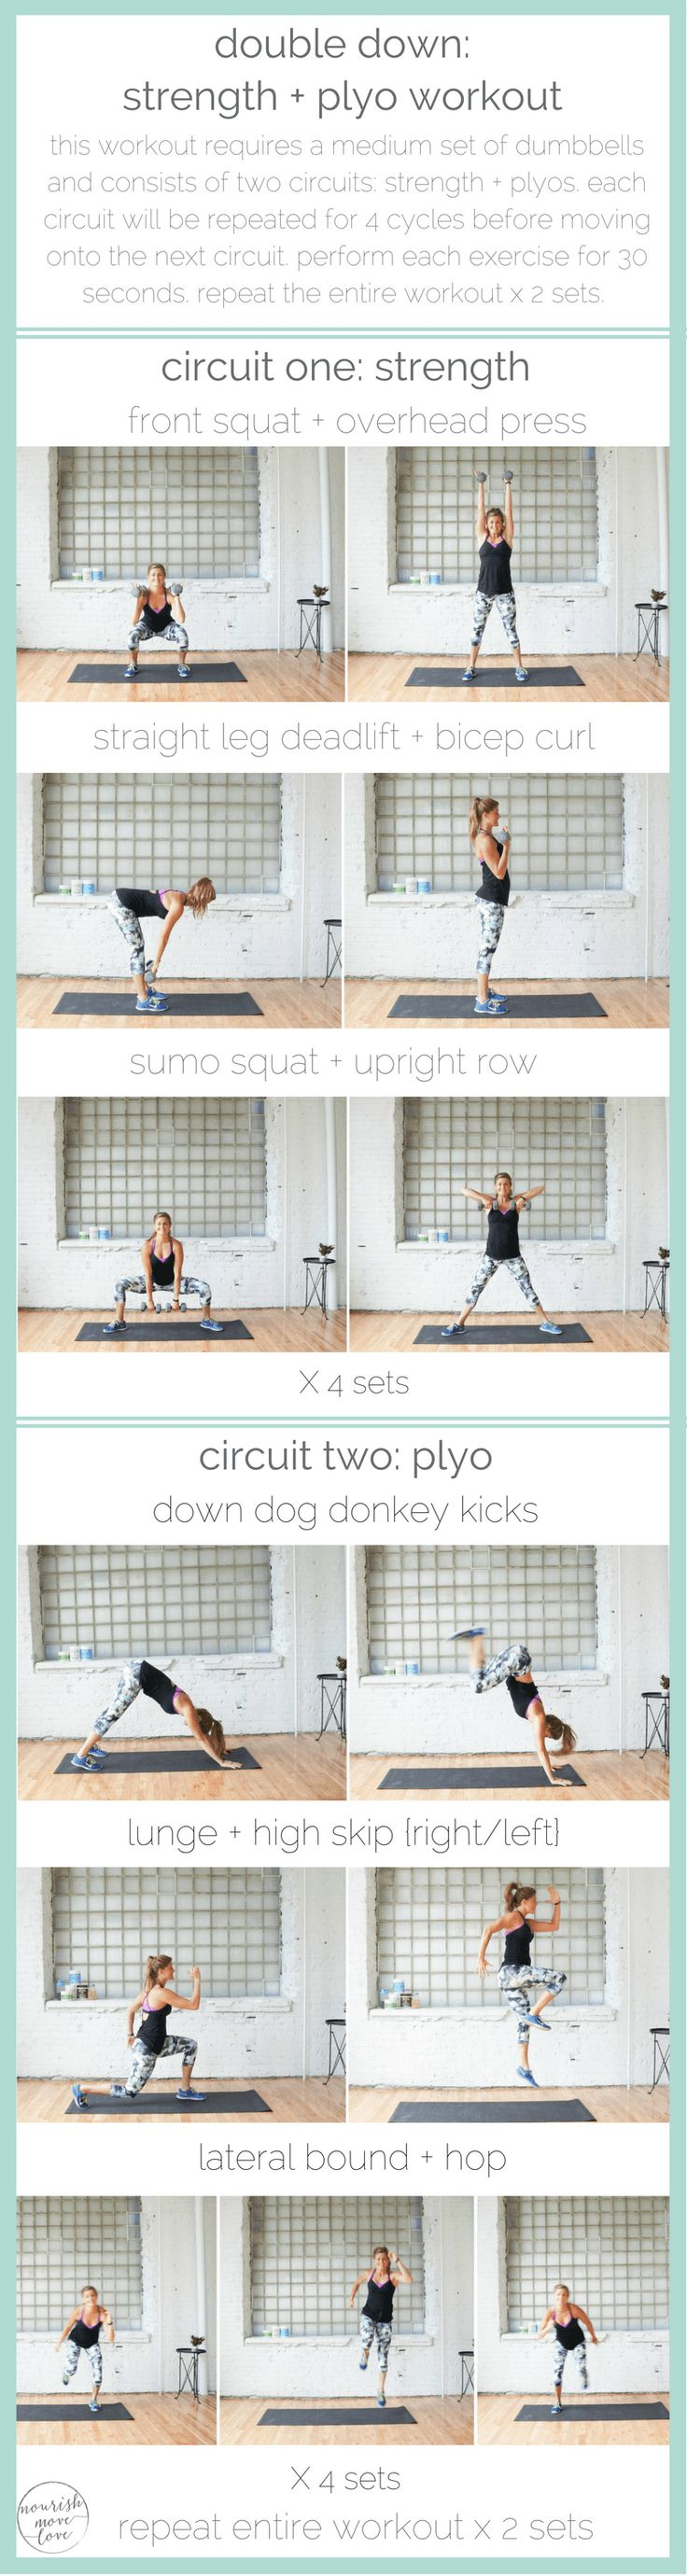 double down: strength + plyo workout, total body workout, 30 minute challenge, upper body + lower body workout | www.nourishmovelove.com